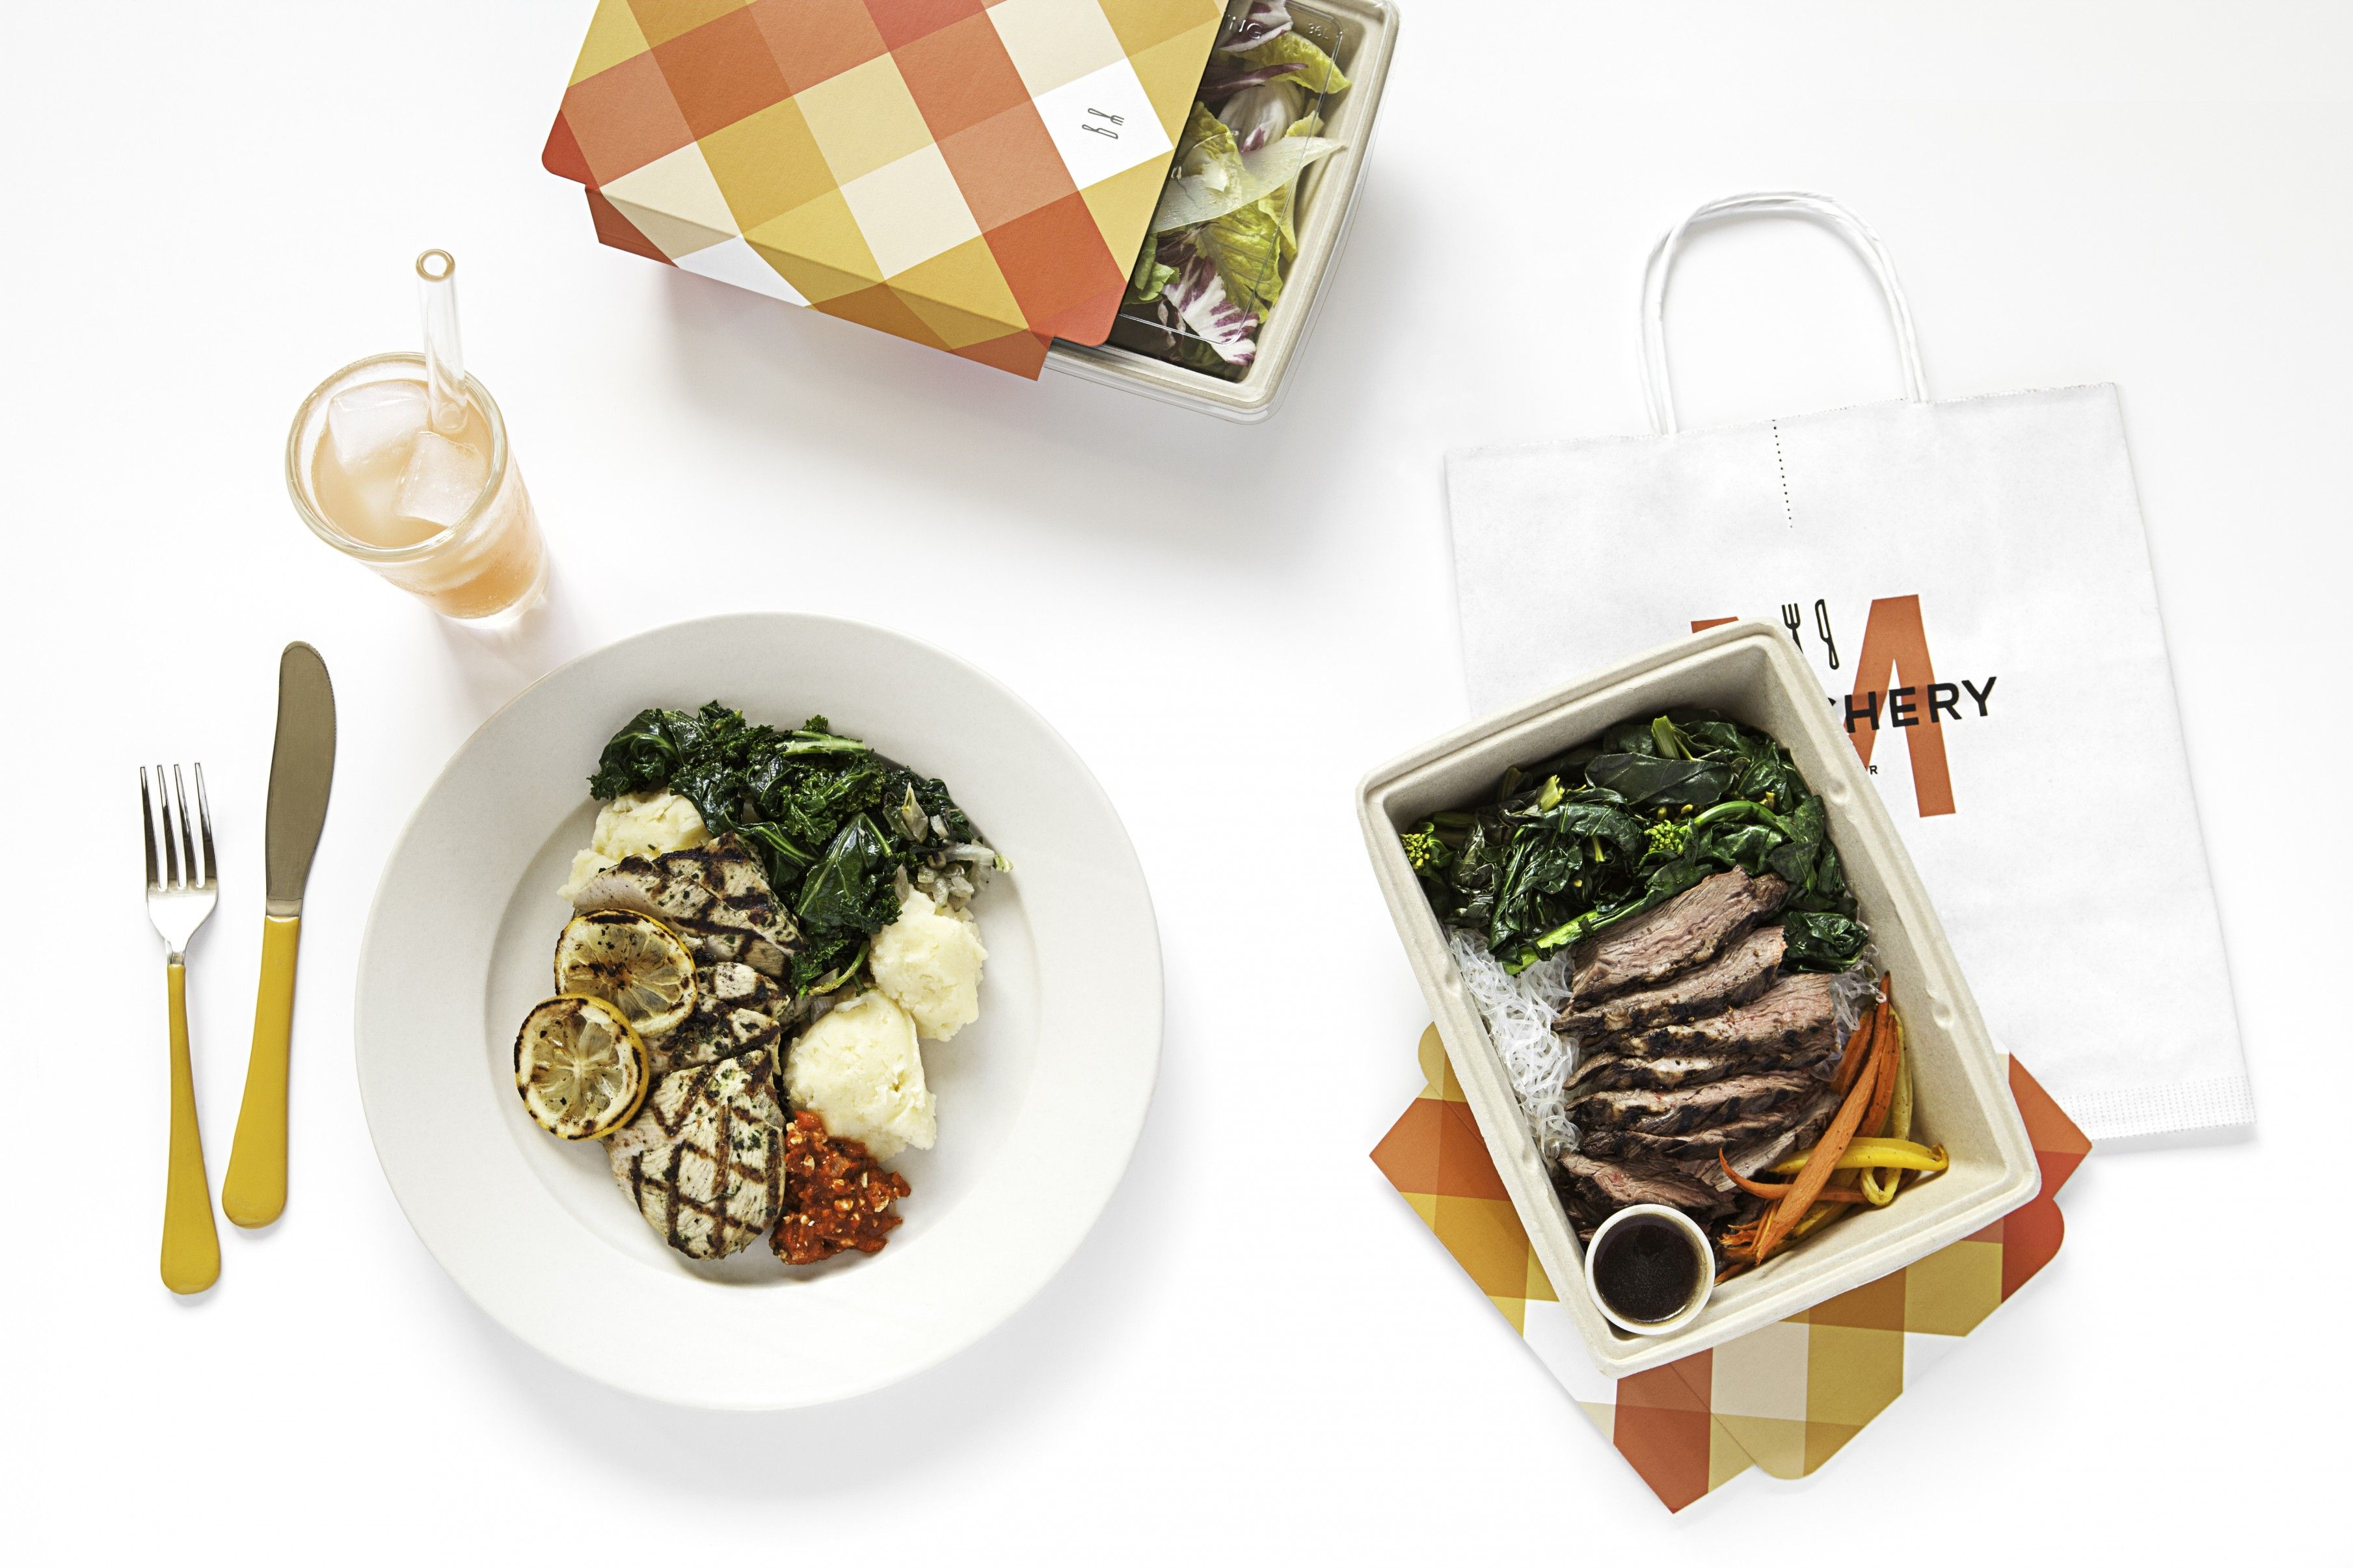 Home Delivery Of Chef Prepared Meals Munchery Food Food Pairings Perfect Food